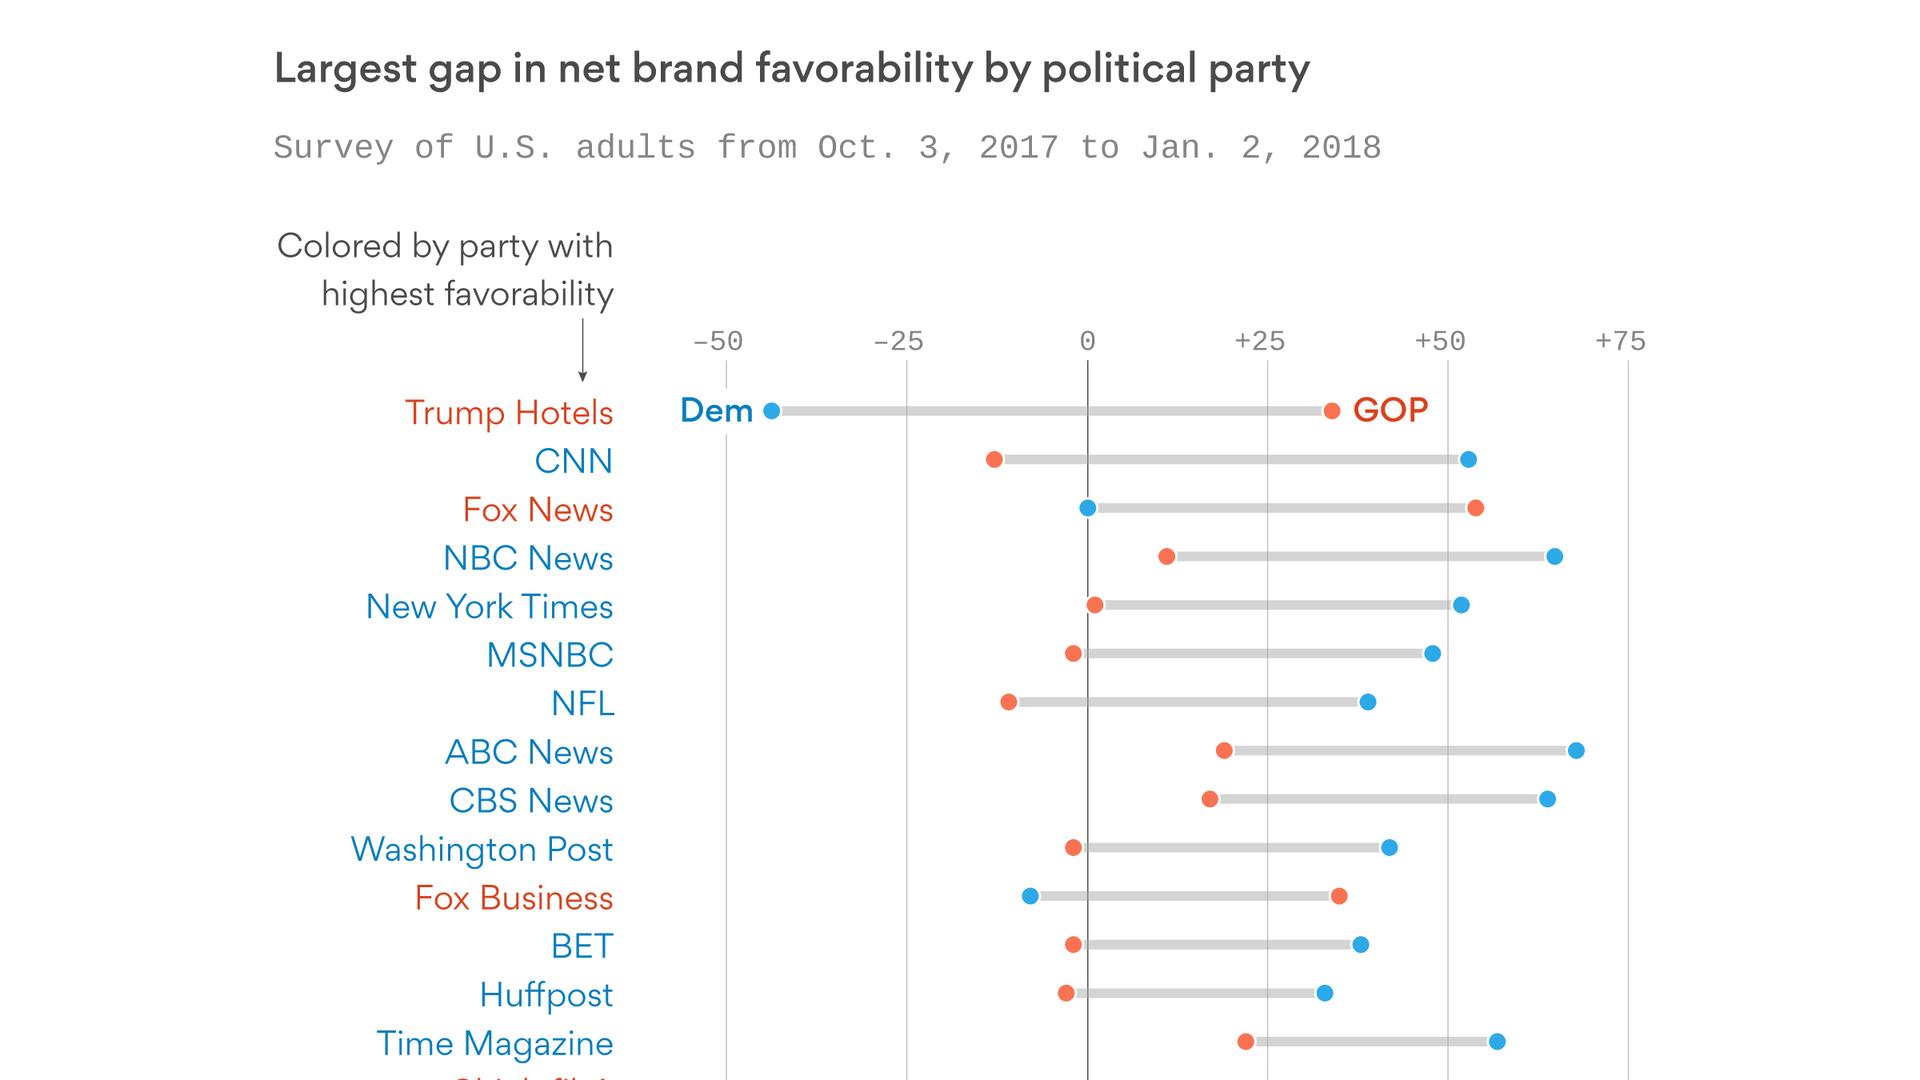 America's most polarizing brands